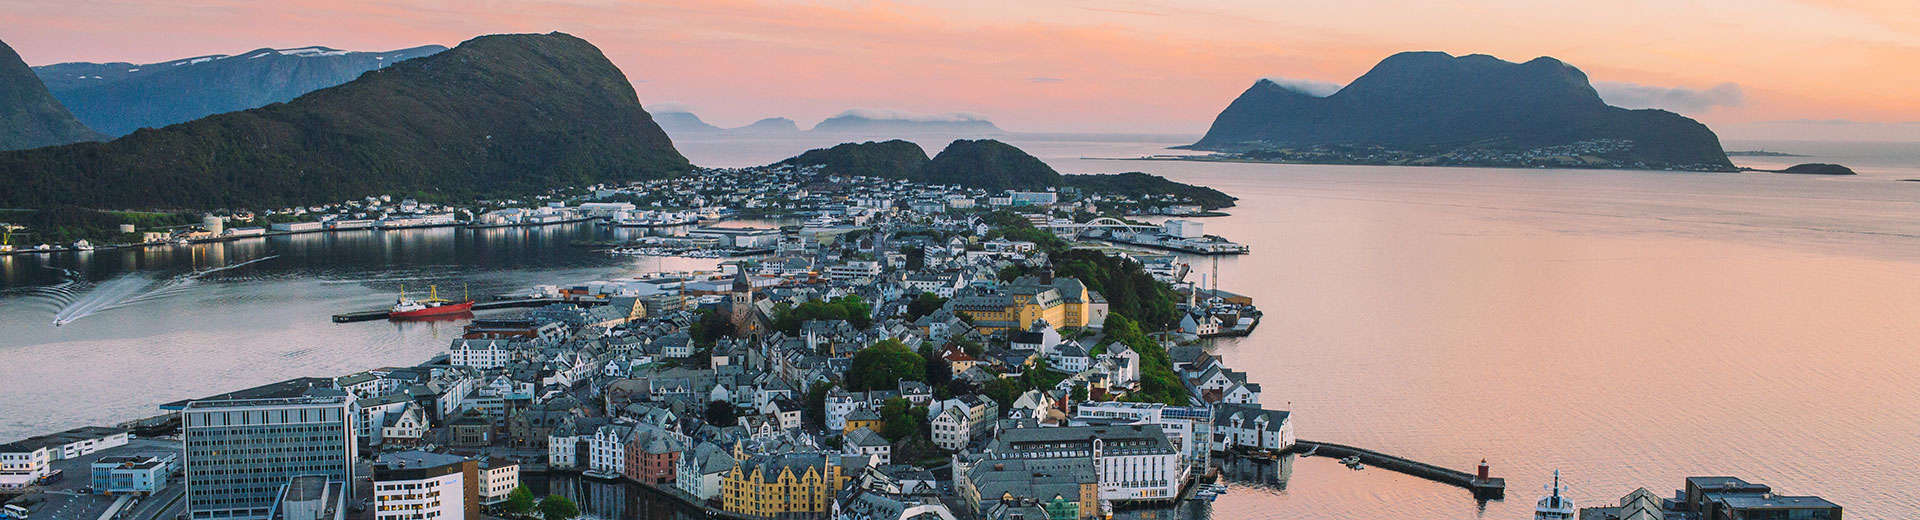 norway alesund fjords aksla adventure travel